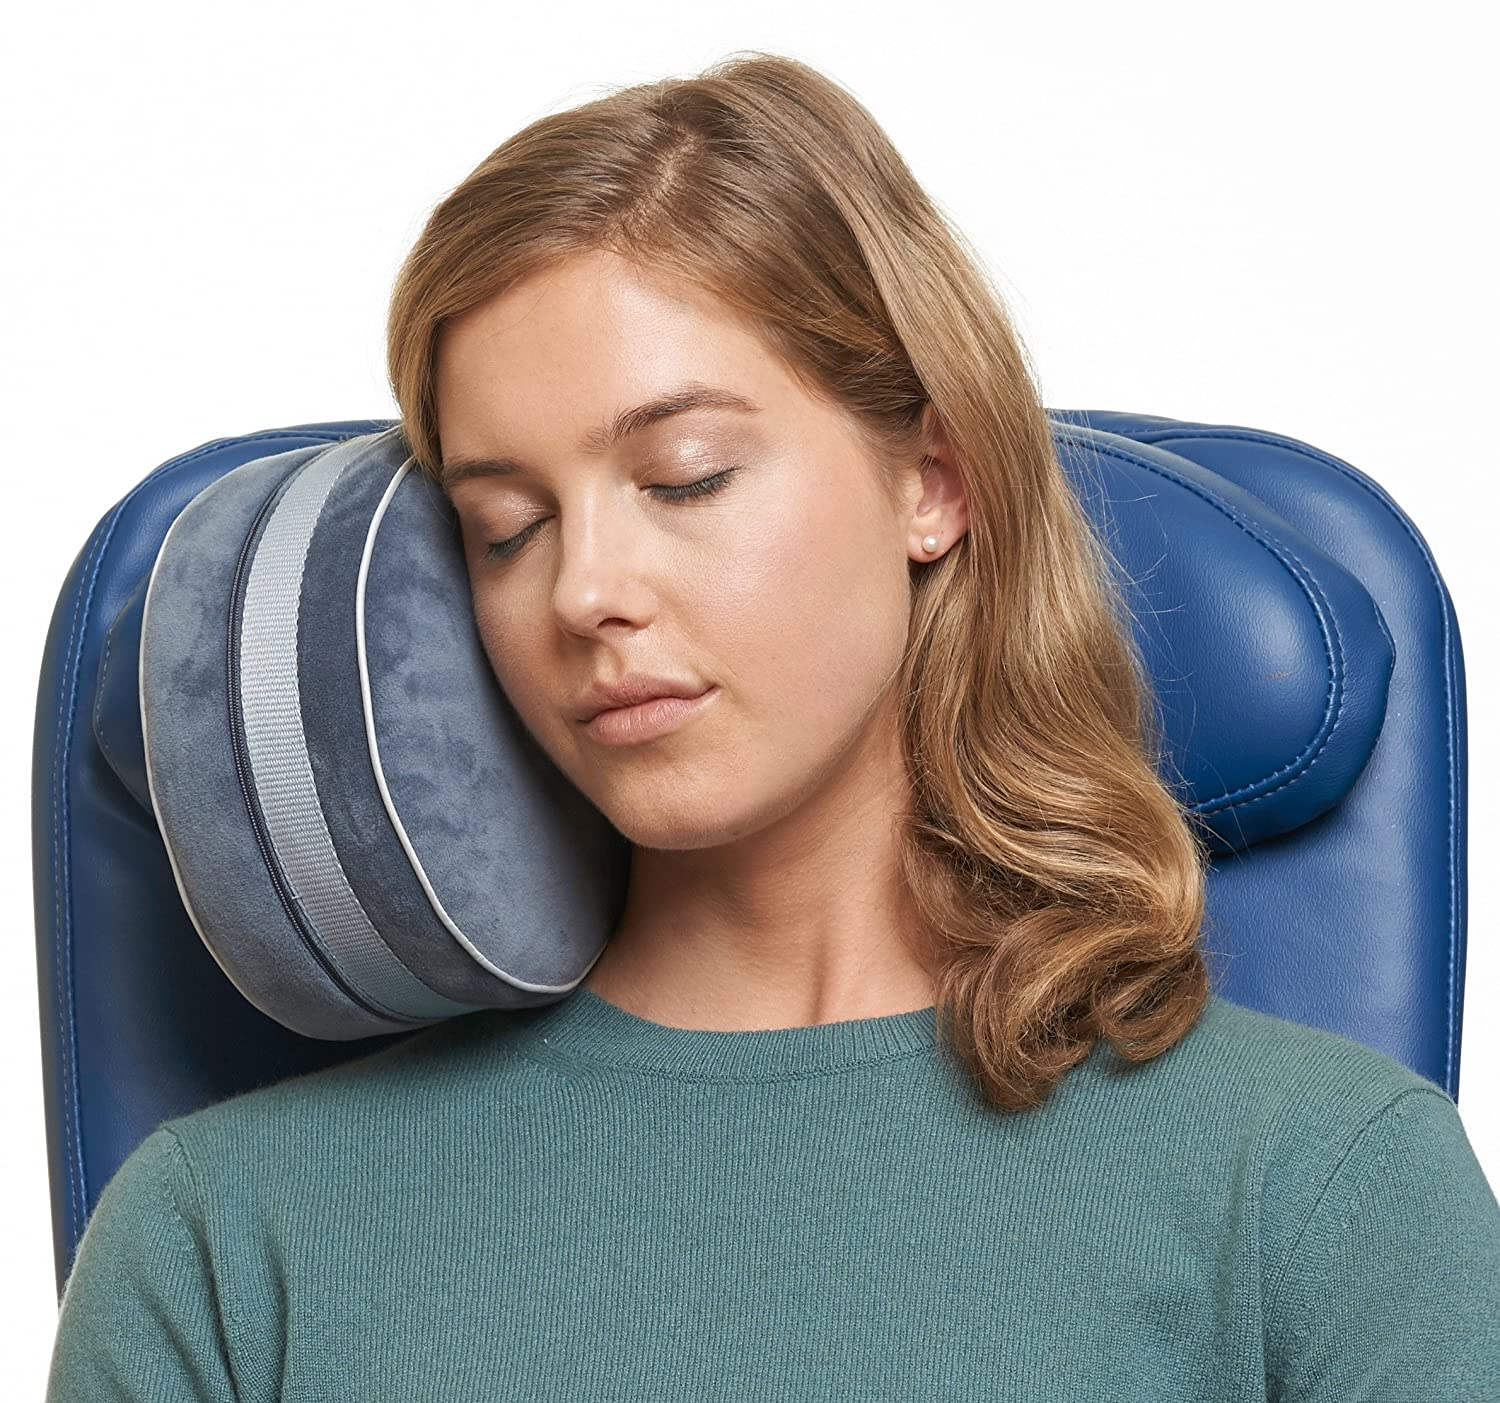 *NEW* Travelrest i-Lene Travel Pillow - The Best Neck Pillows for Airplanes - Attaches to Airplane Headrest - Dual-Density Memory Foam - Plush Washable Removable Cover (2-Year Warranty) TPF112B